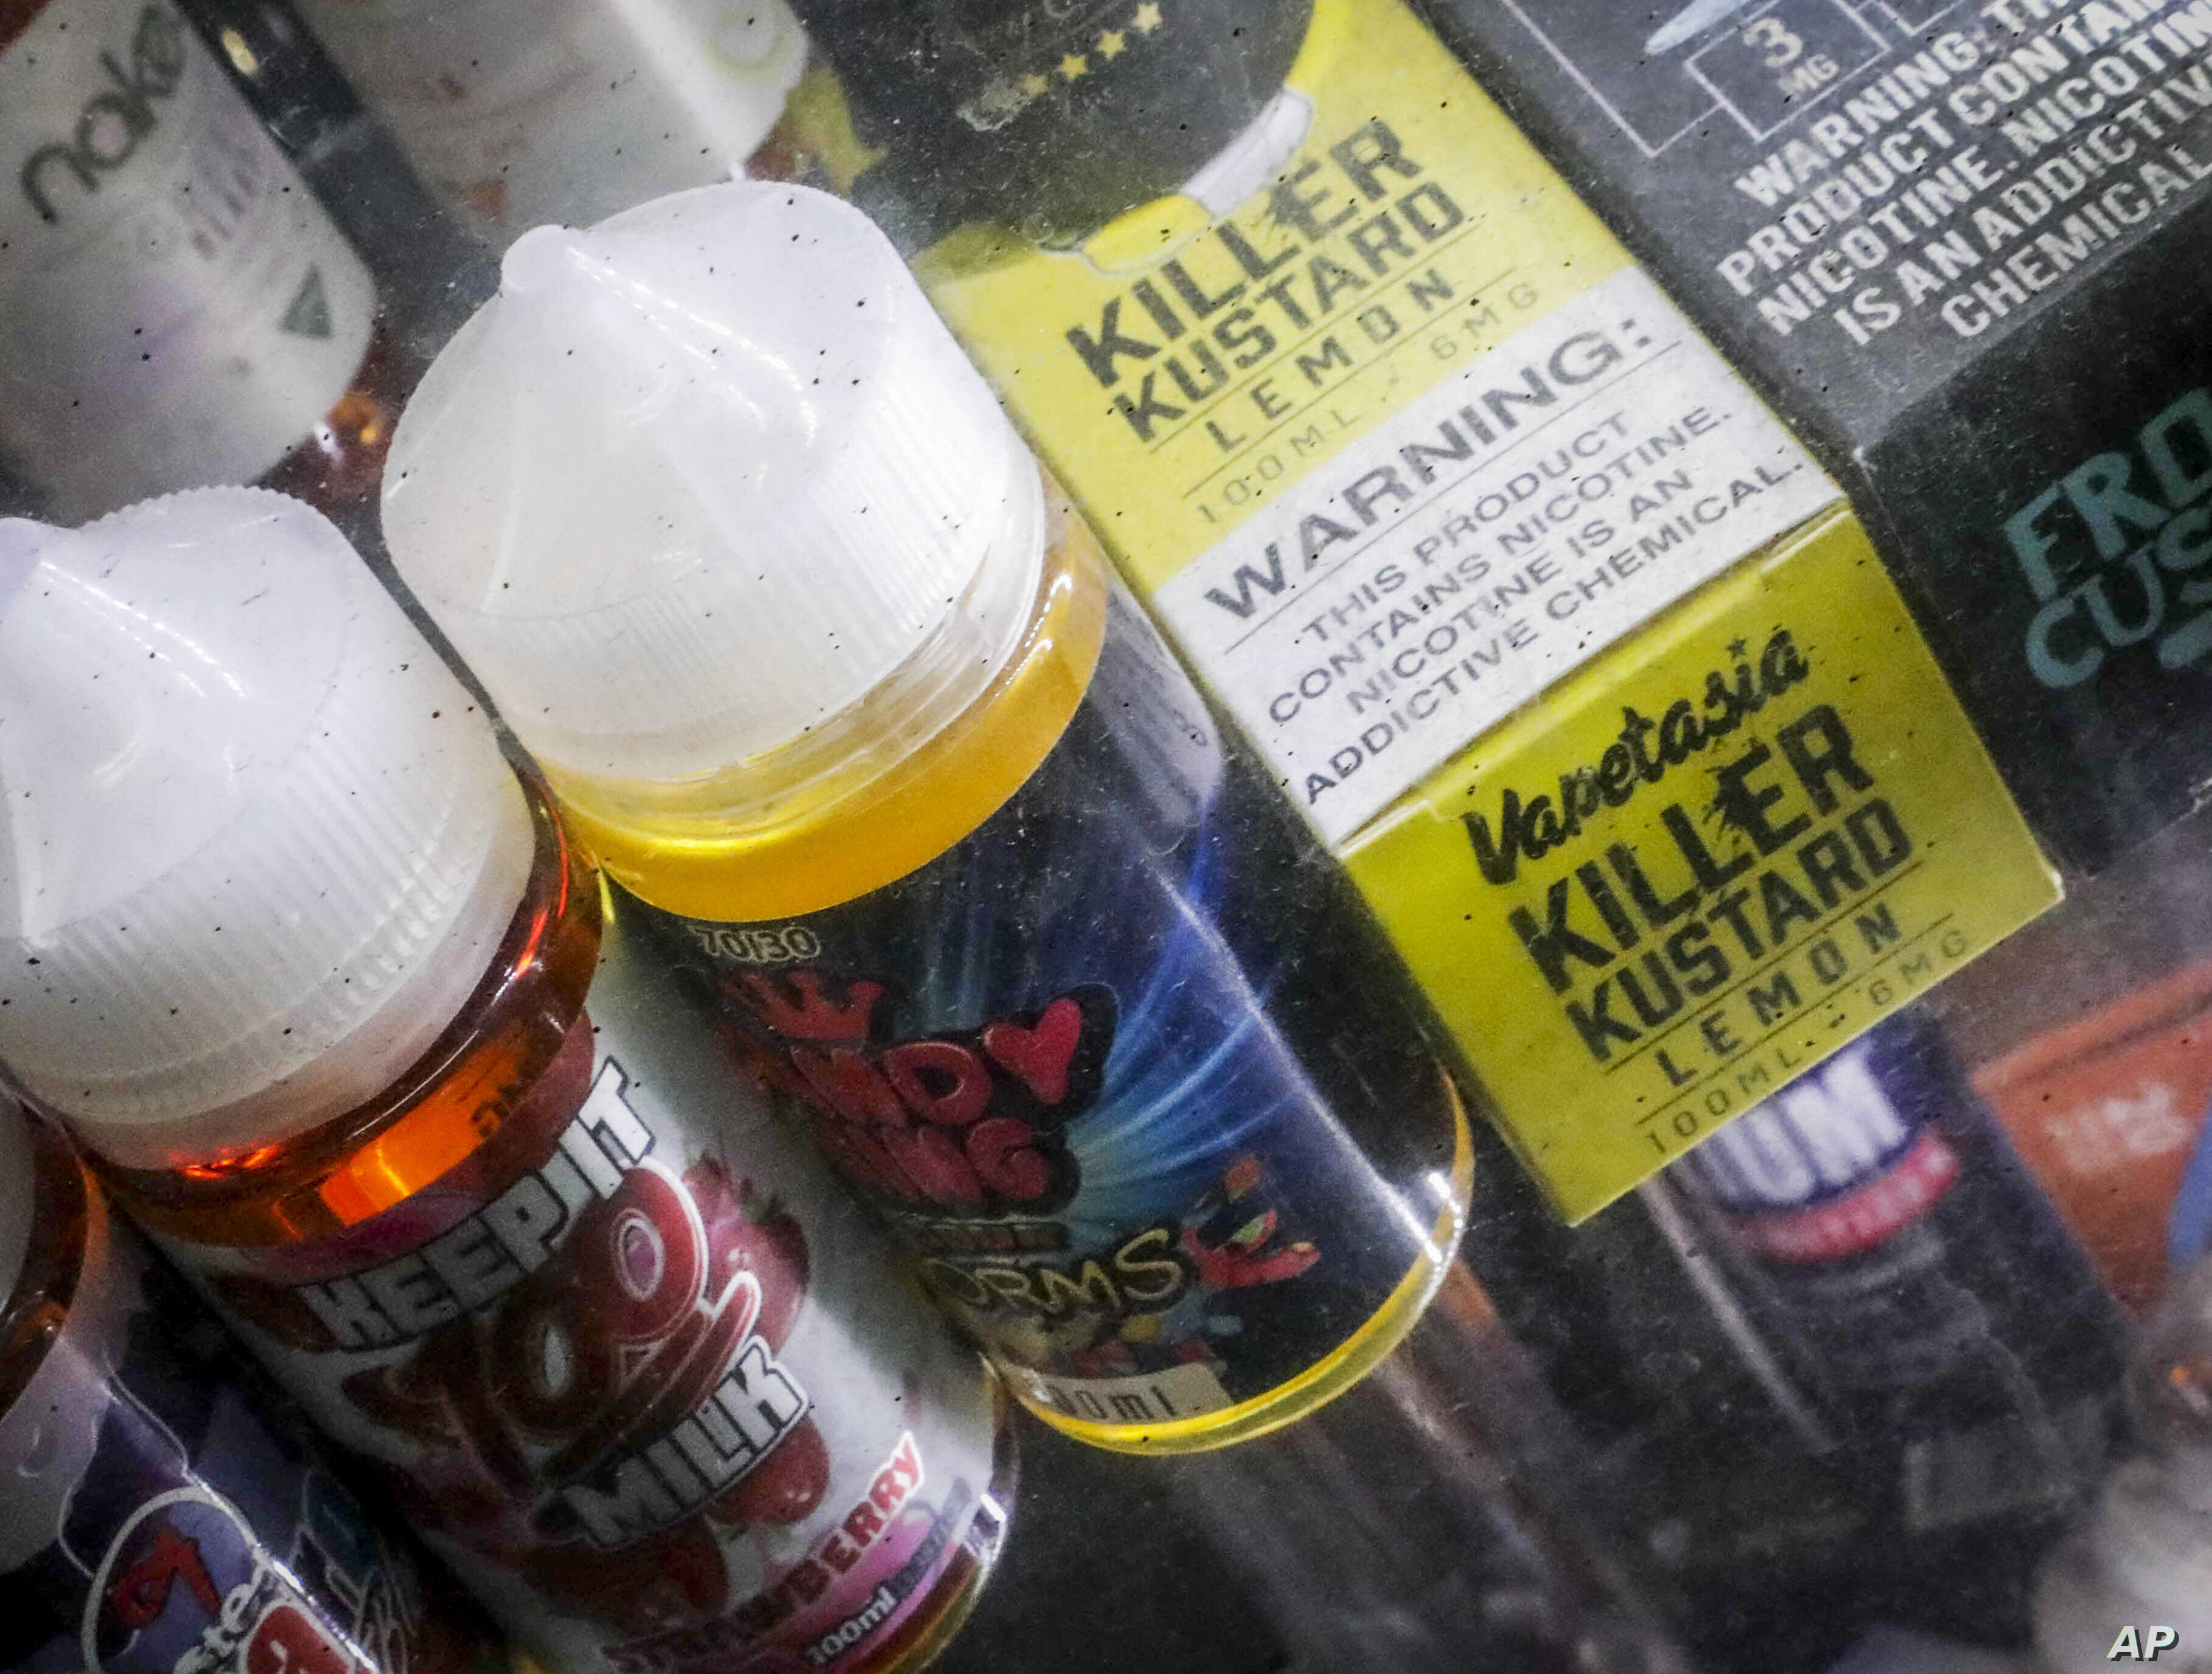 More Americans say vaping is as unsafe as smoking cigarettes